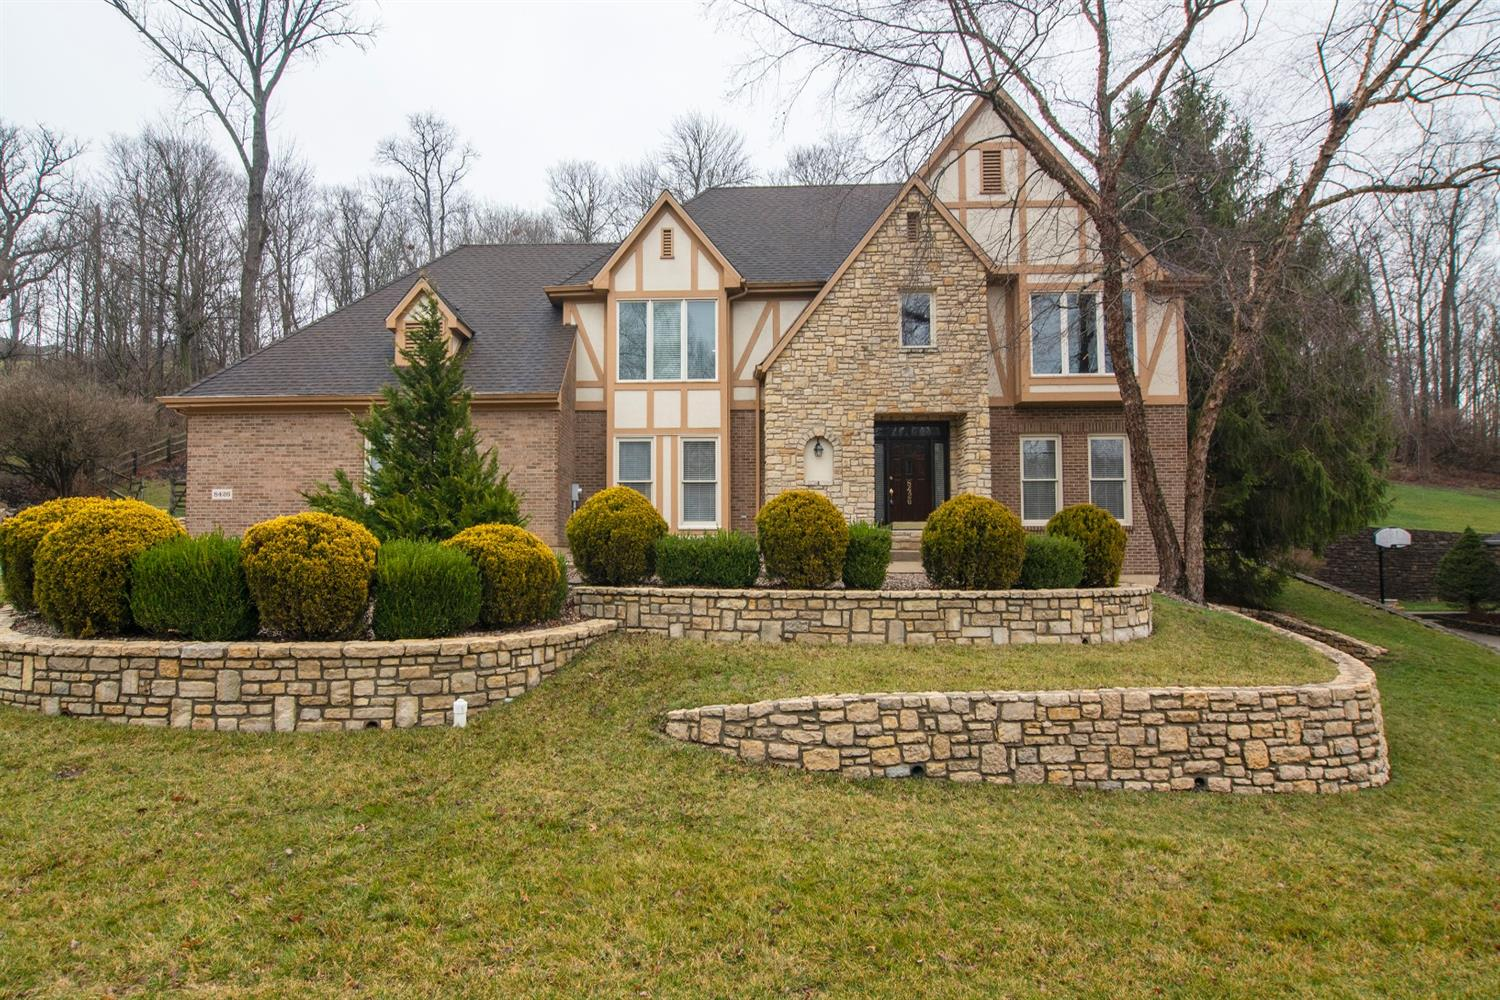 8426 Rupp Farm Drive, West Chester, OH 45069